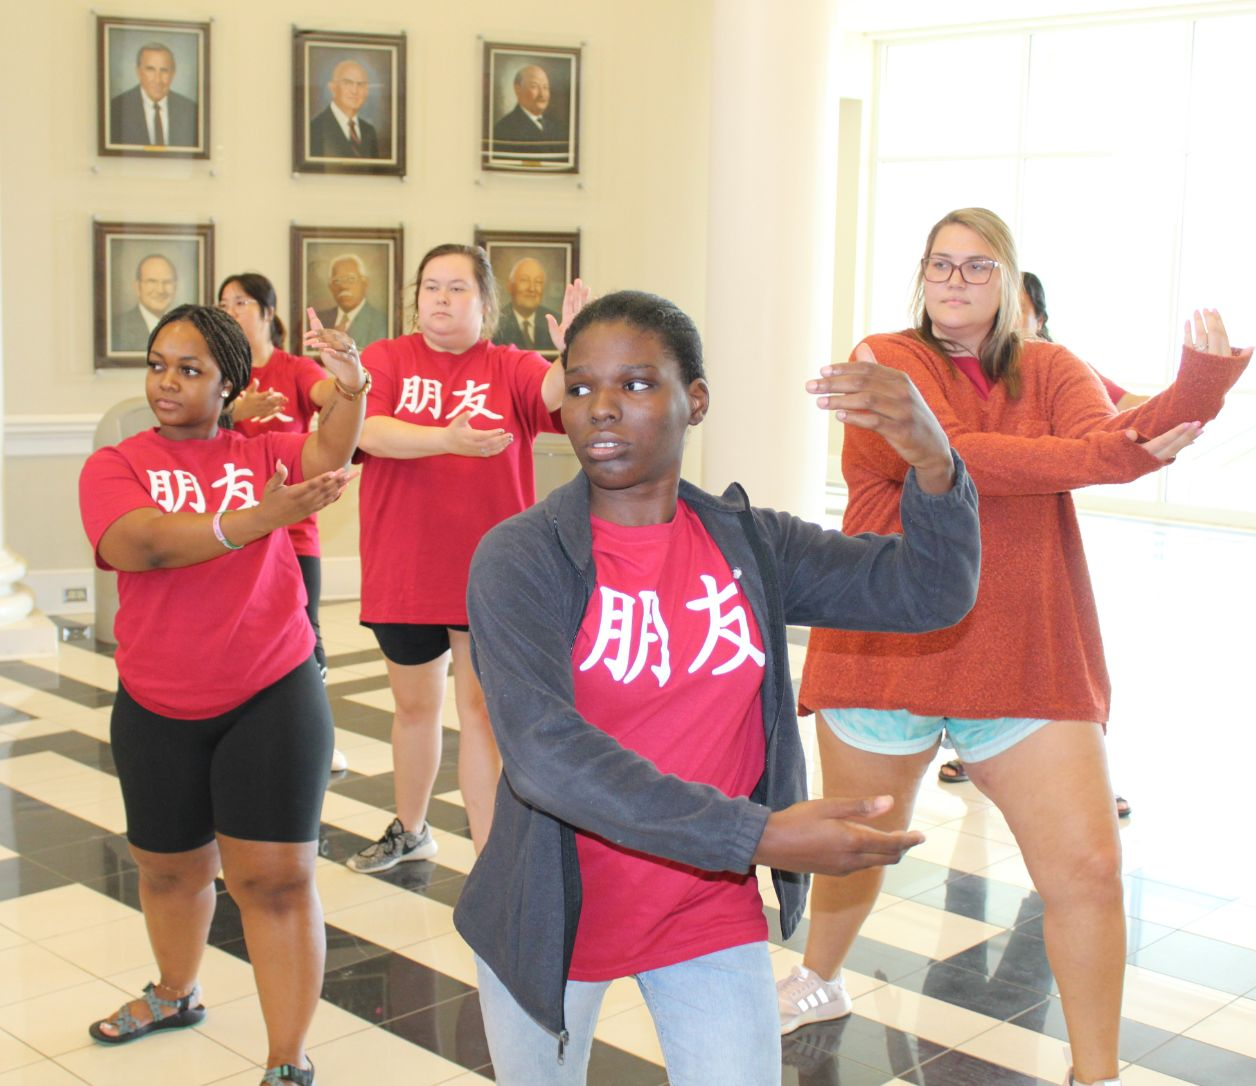 Male students gather to practice the Tai Chi movement that places their right hand on their left elbow in an L-shape.